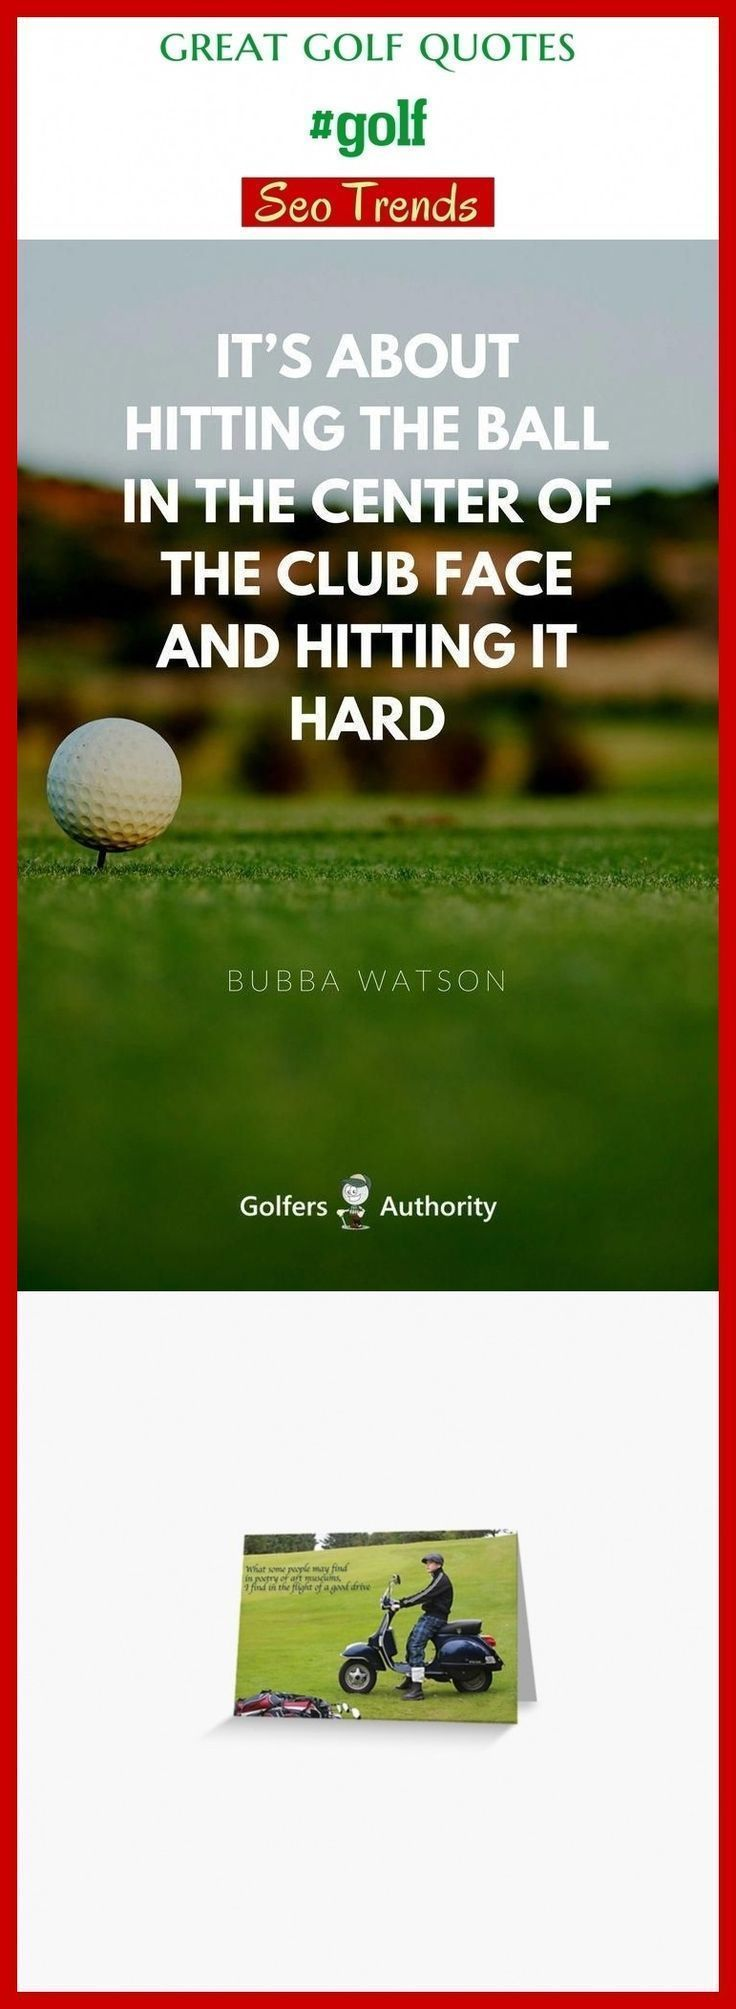 Auto Racing Quotes Funny Golf Quotes Funny Men Birthday Golf Quotes Cute Go Golf Quotes Funny Golf Quotes Quotes For Kids